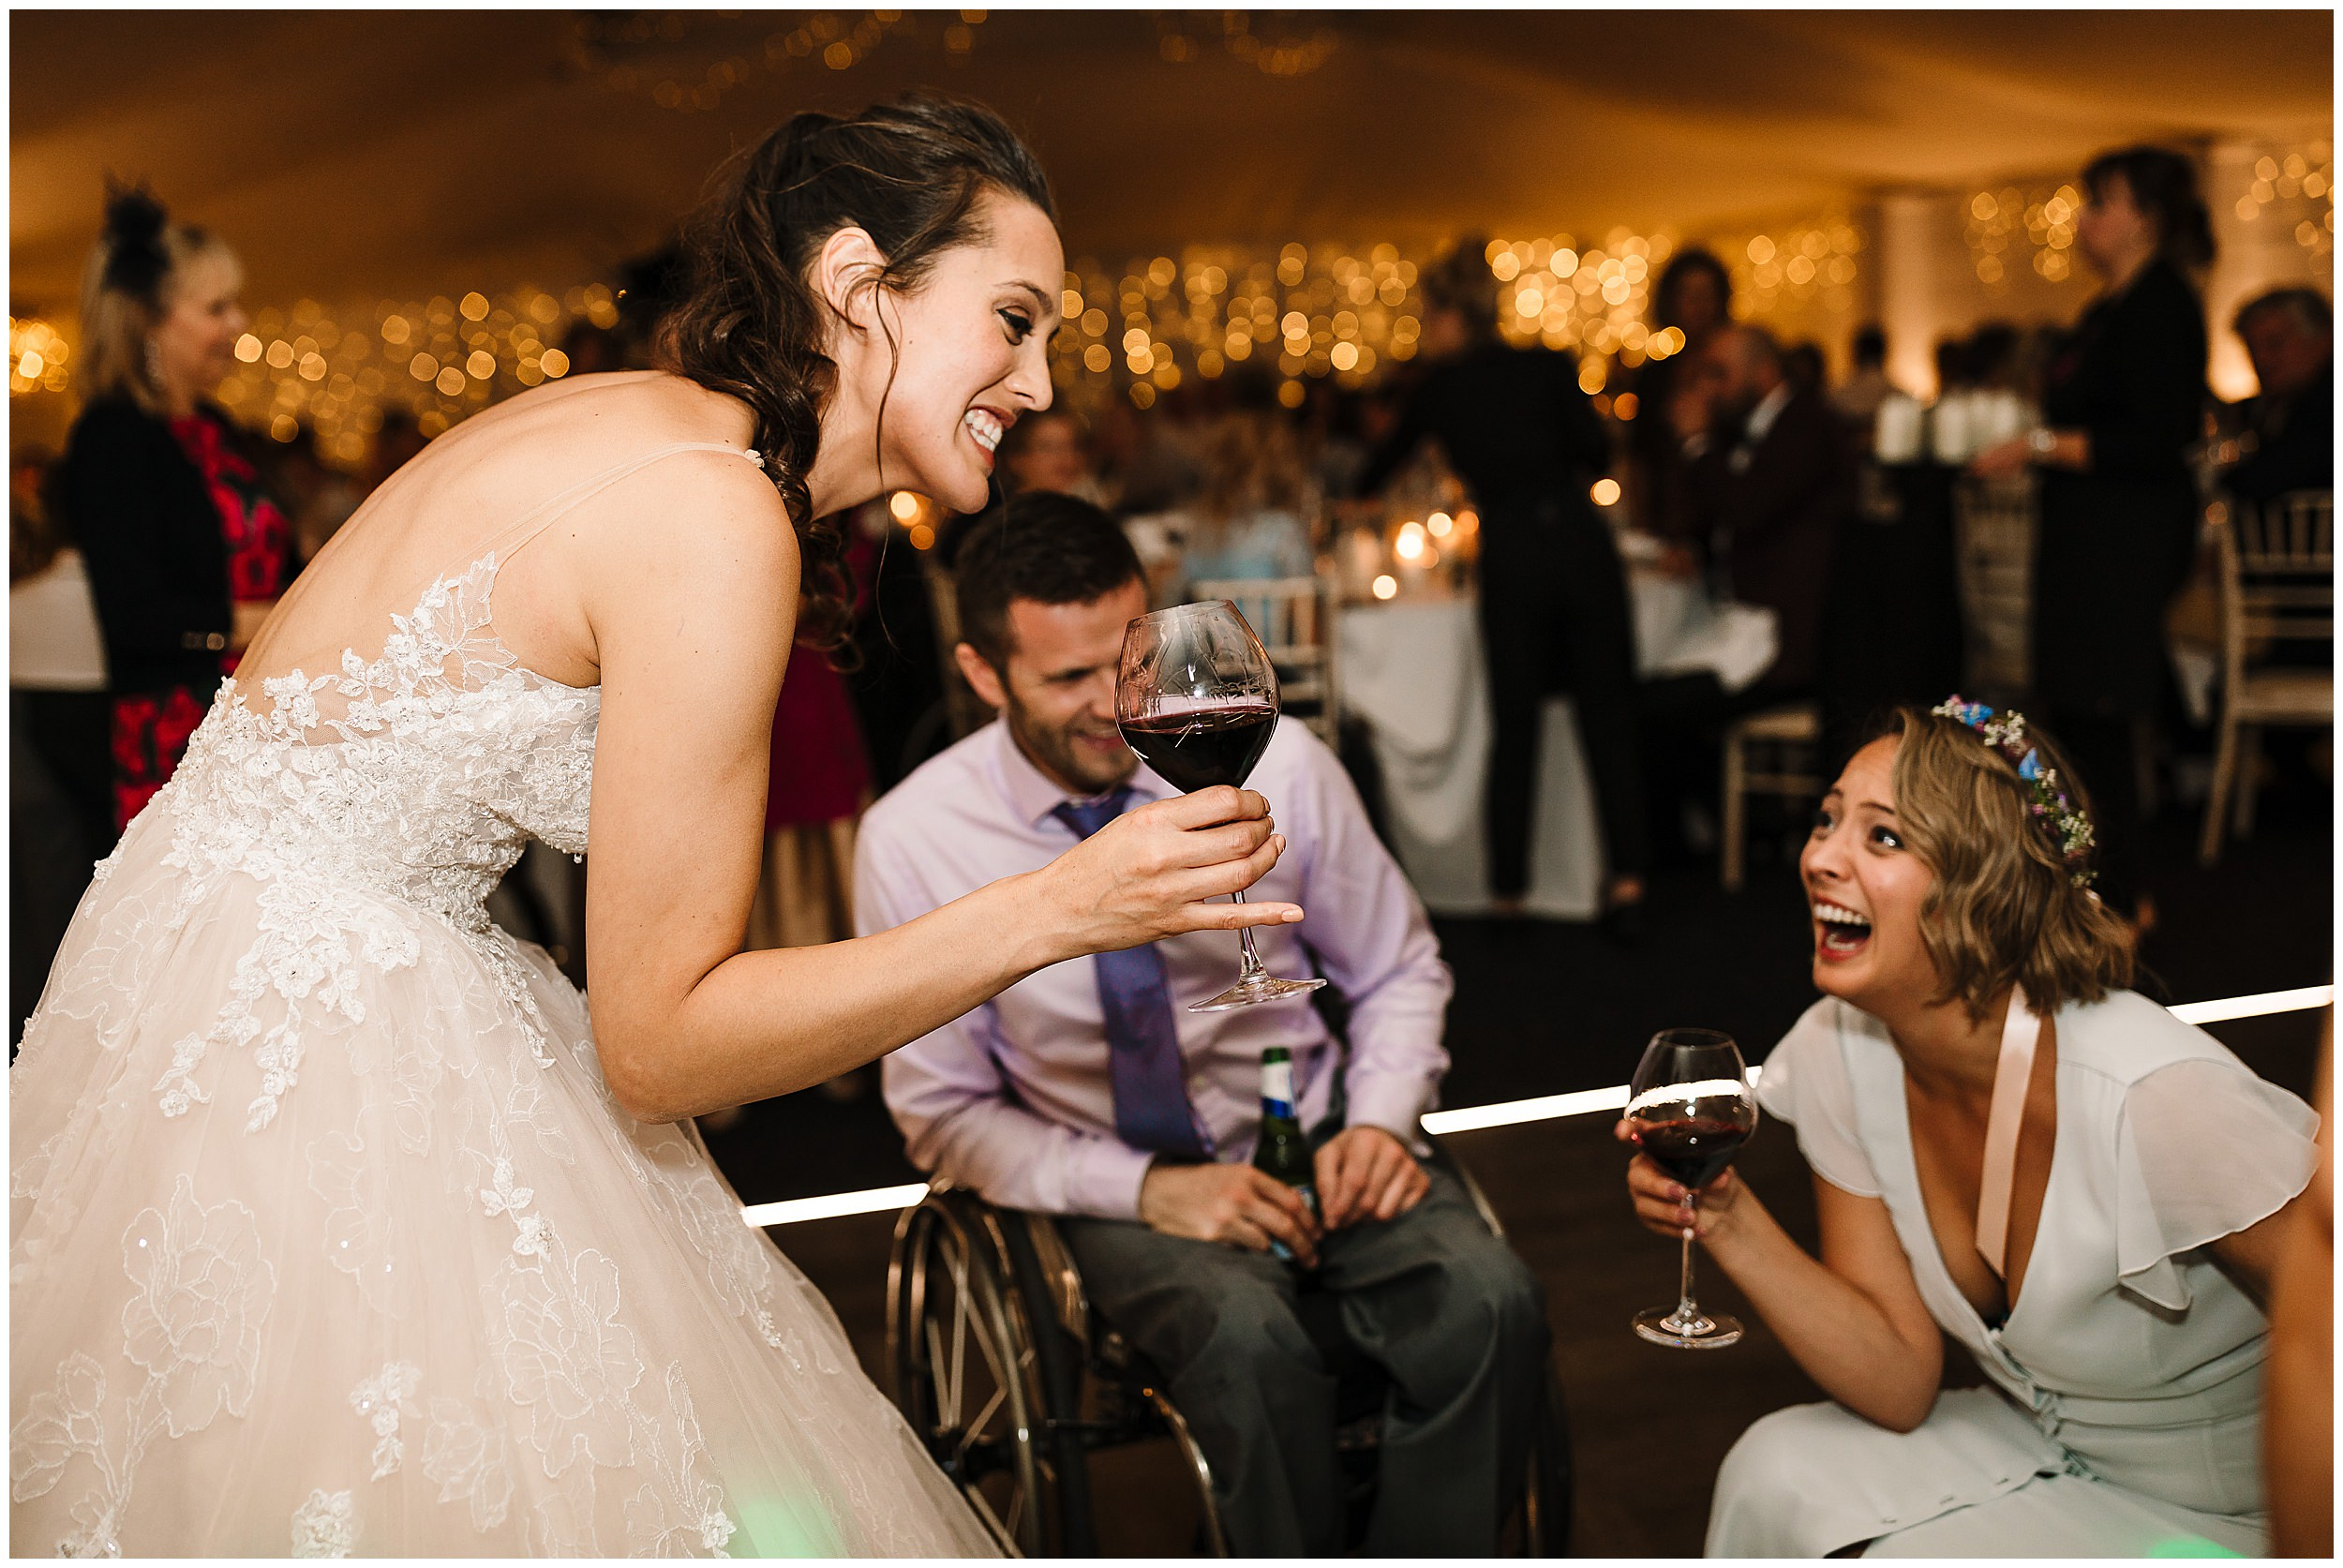 A bride holding wine and laughing with guests and her bridesmaid